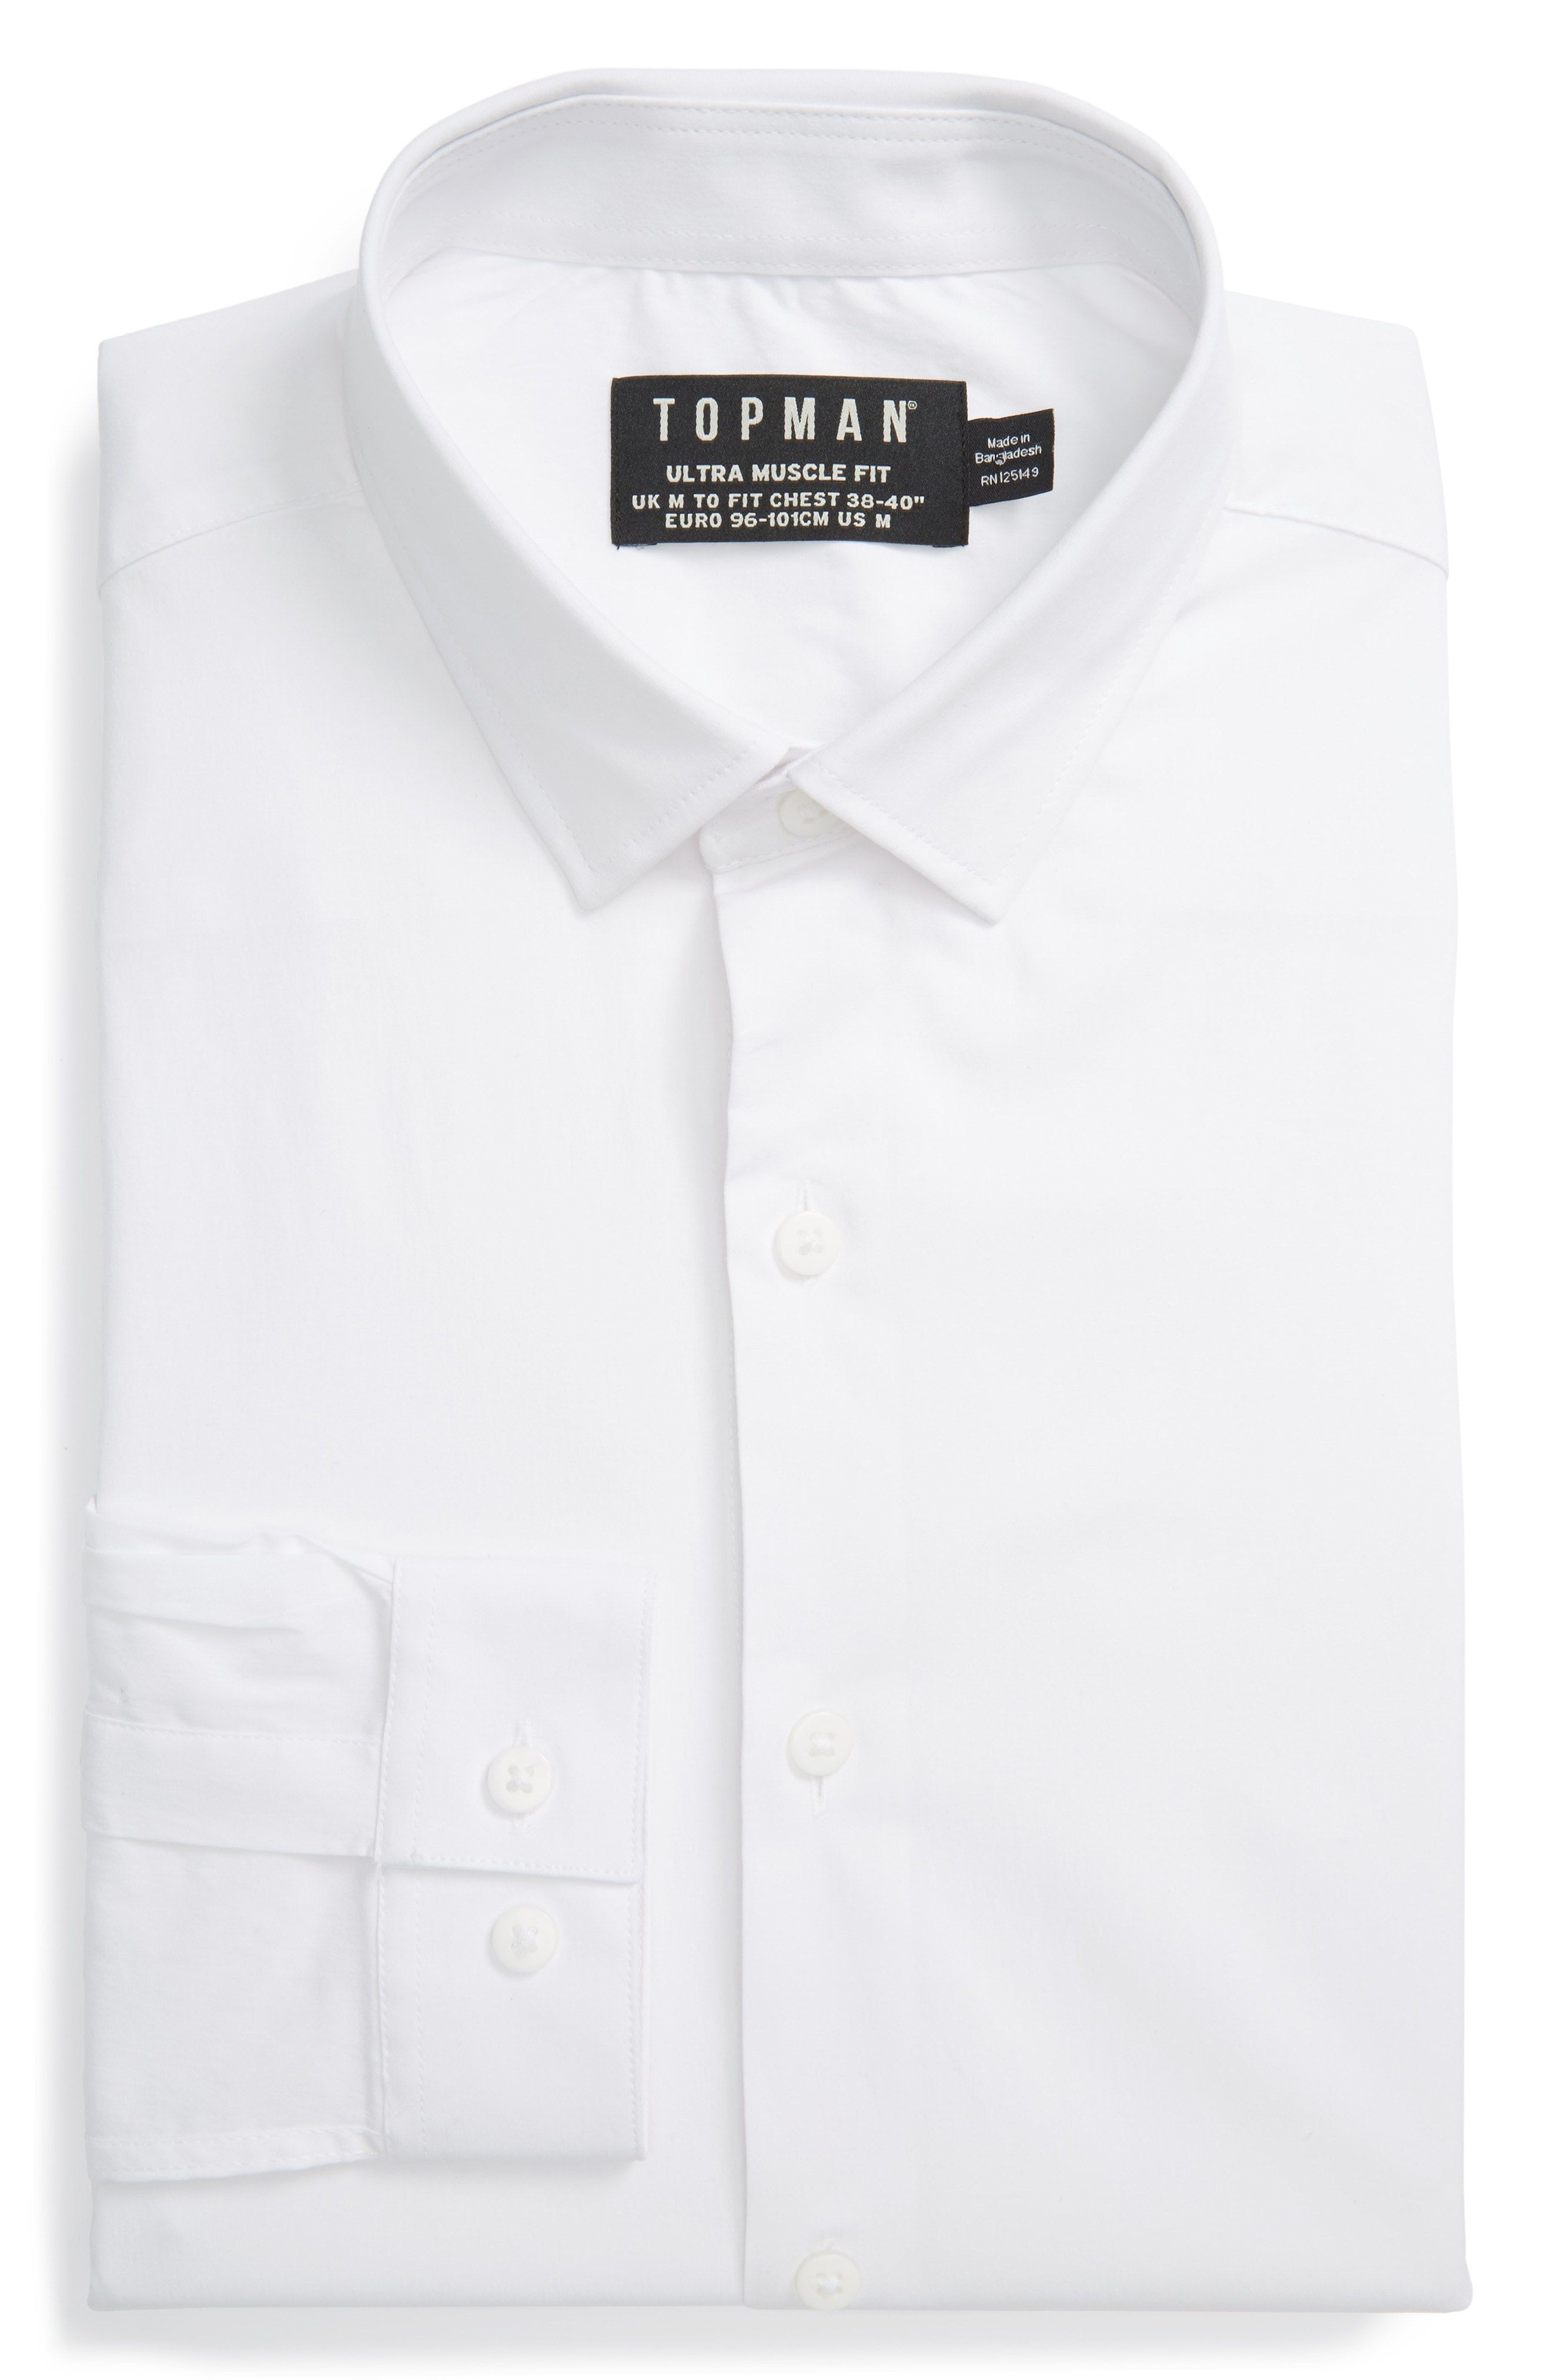 3b397254d9ad New Topman Ultra Muscle Fit Dress Shirt ,STONE fashion online.  [$55]newtstyle top<<